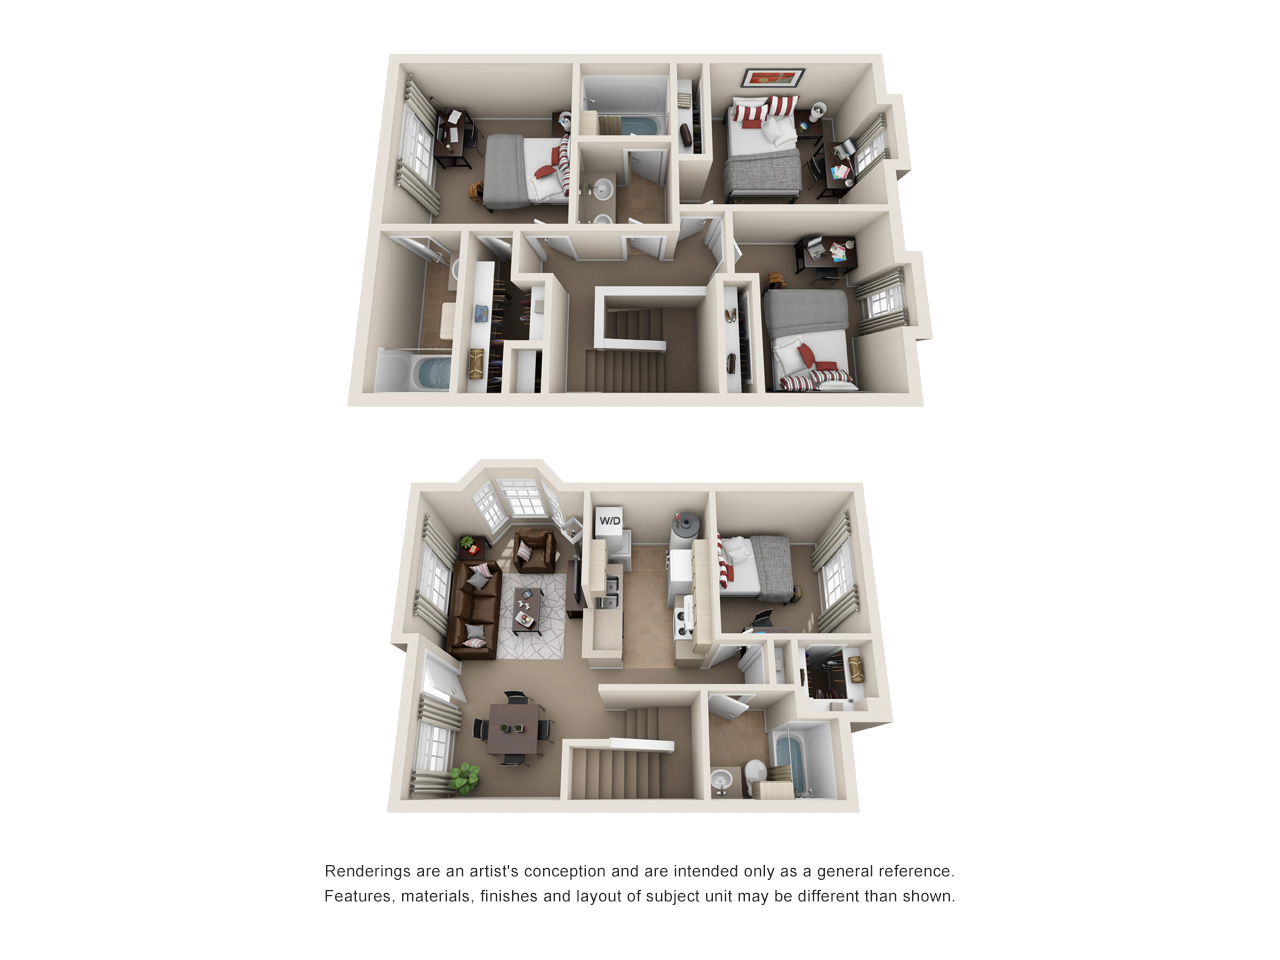 Floor plan of a 4 bed, 3 bath student apartment